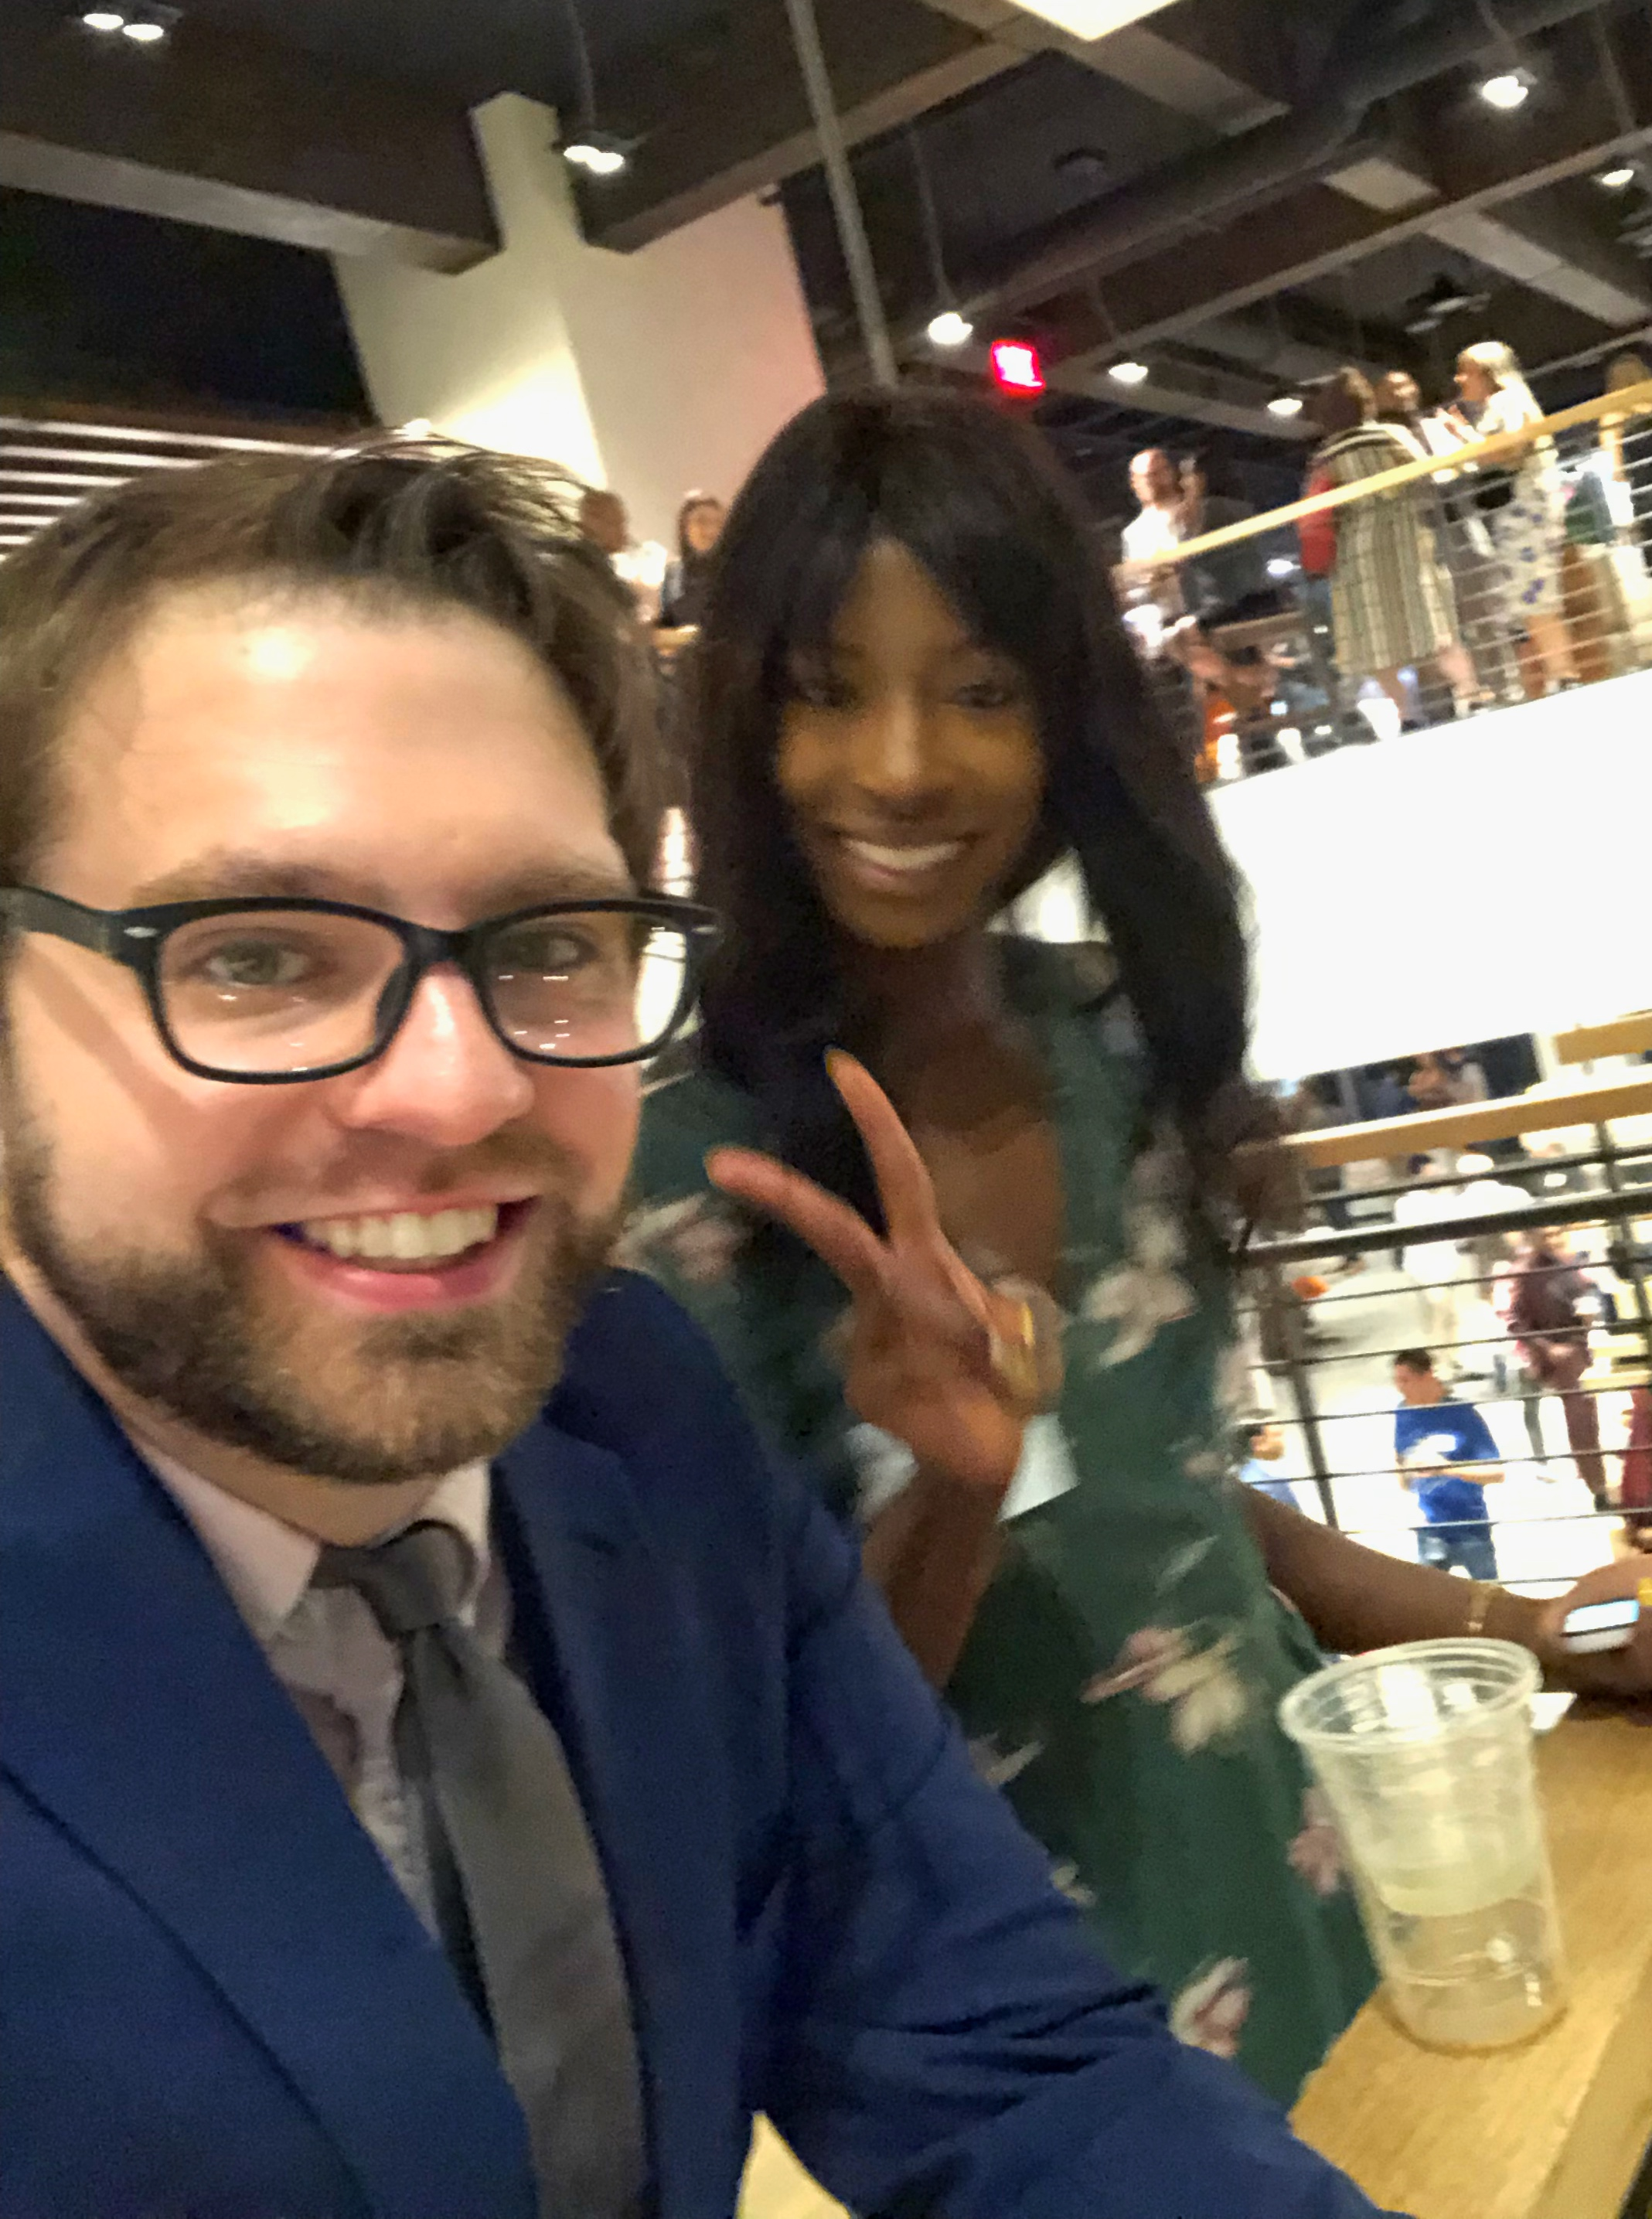 Founder, Ryan Martin, and Sierra Carter Gordon at Philadelphia Business Week's 2019 Signature event in the Comcast Technology Center.